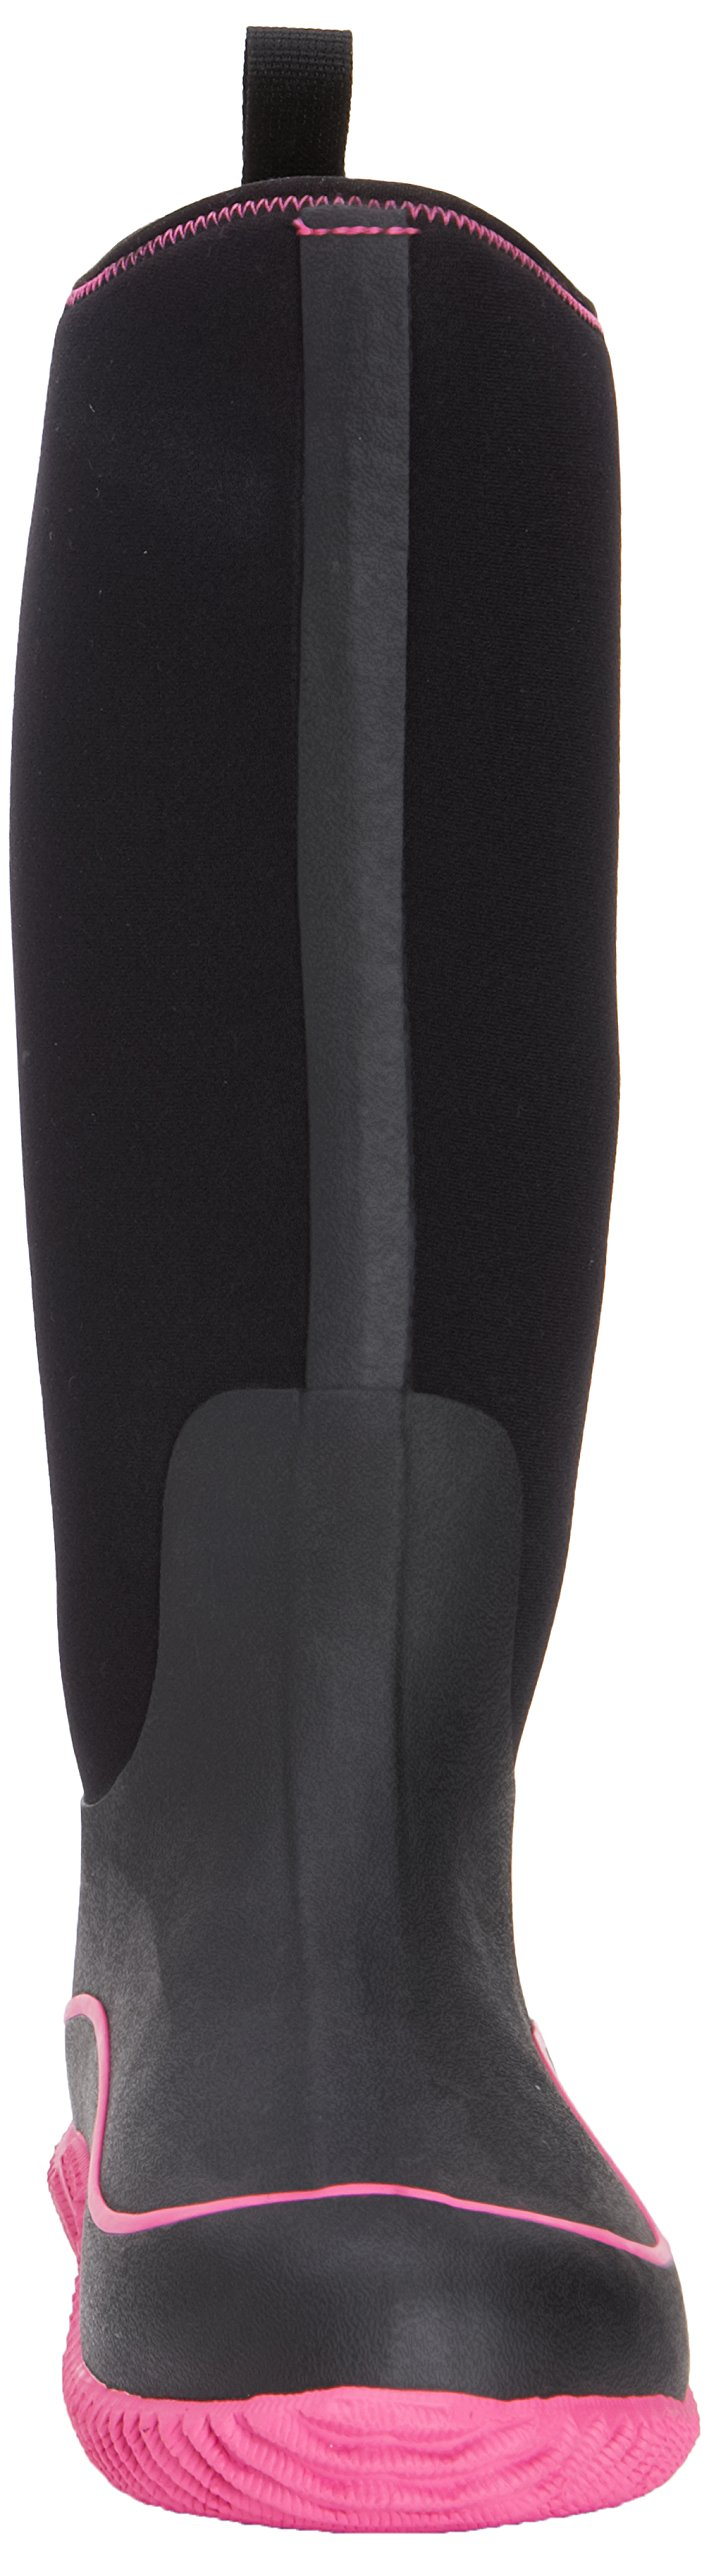 Muck Boot Women's Hale Snow Boot, Black/Hot Pink, 8 M US by Muck Boot (Image #5)